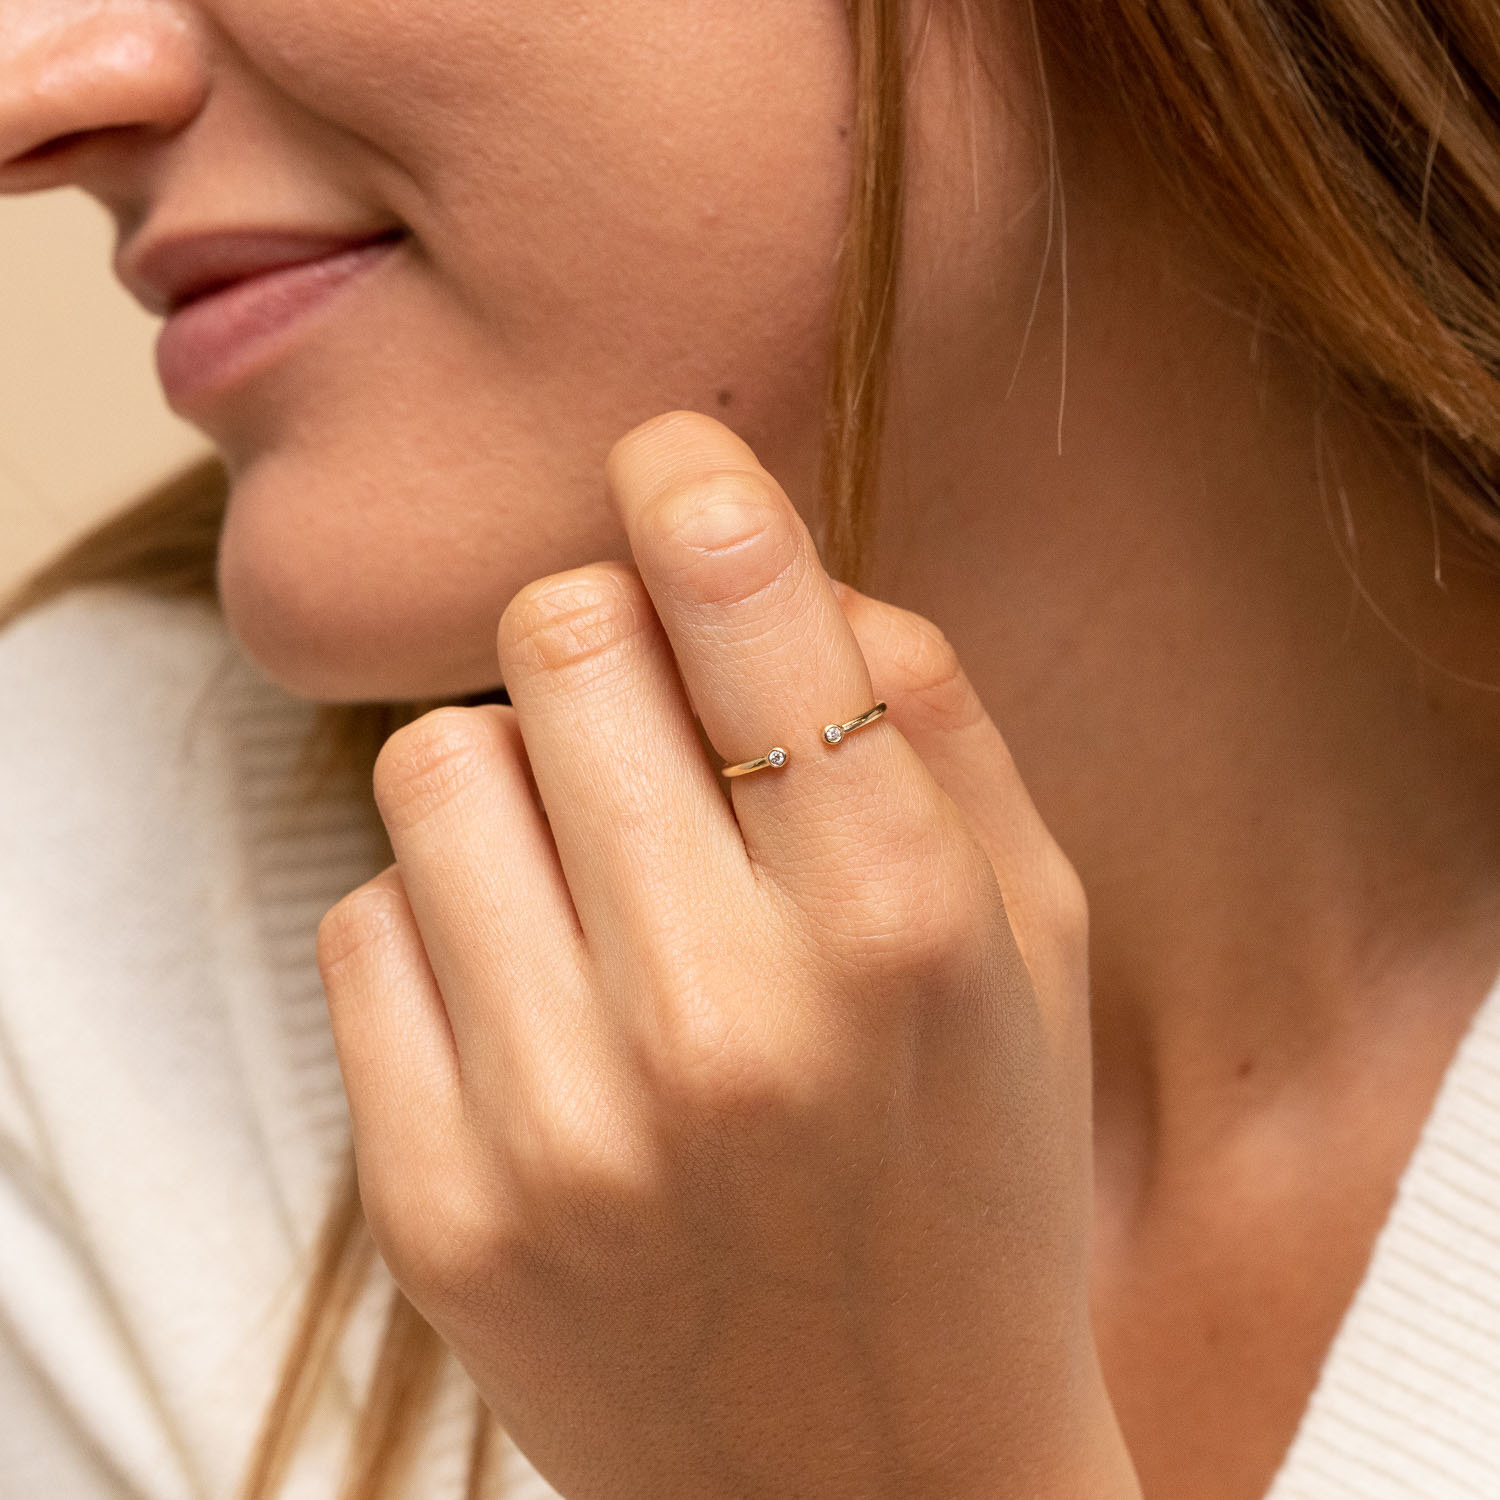 A person wearing the ring on their index finger